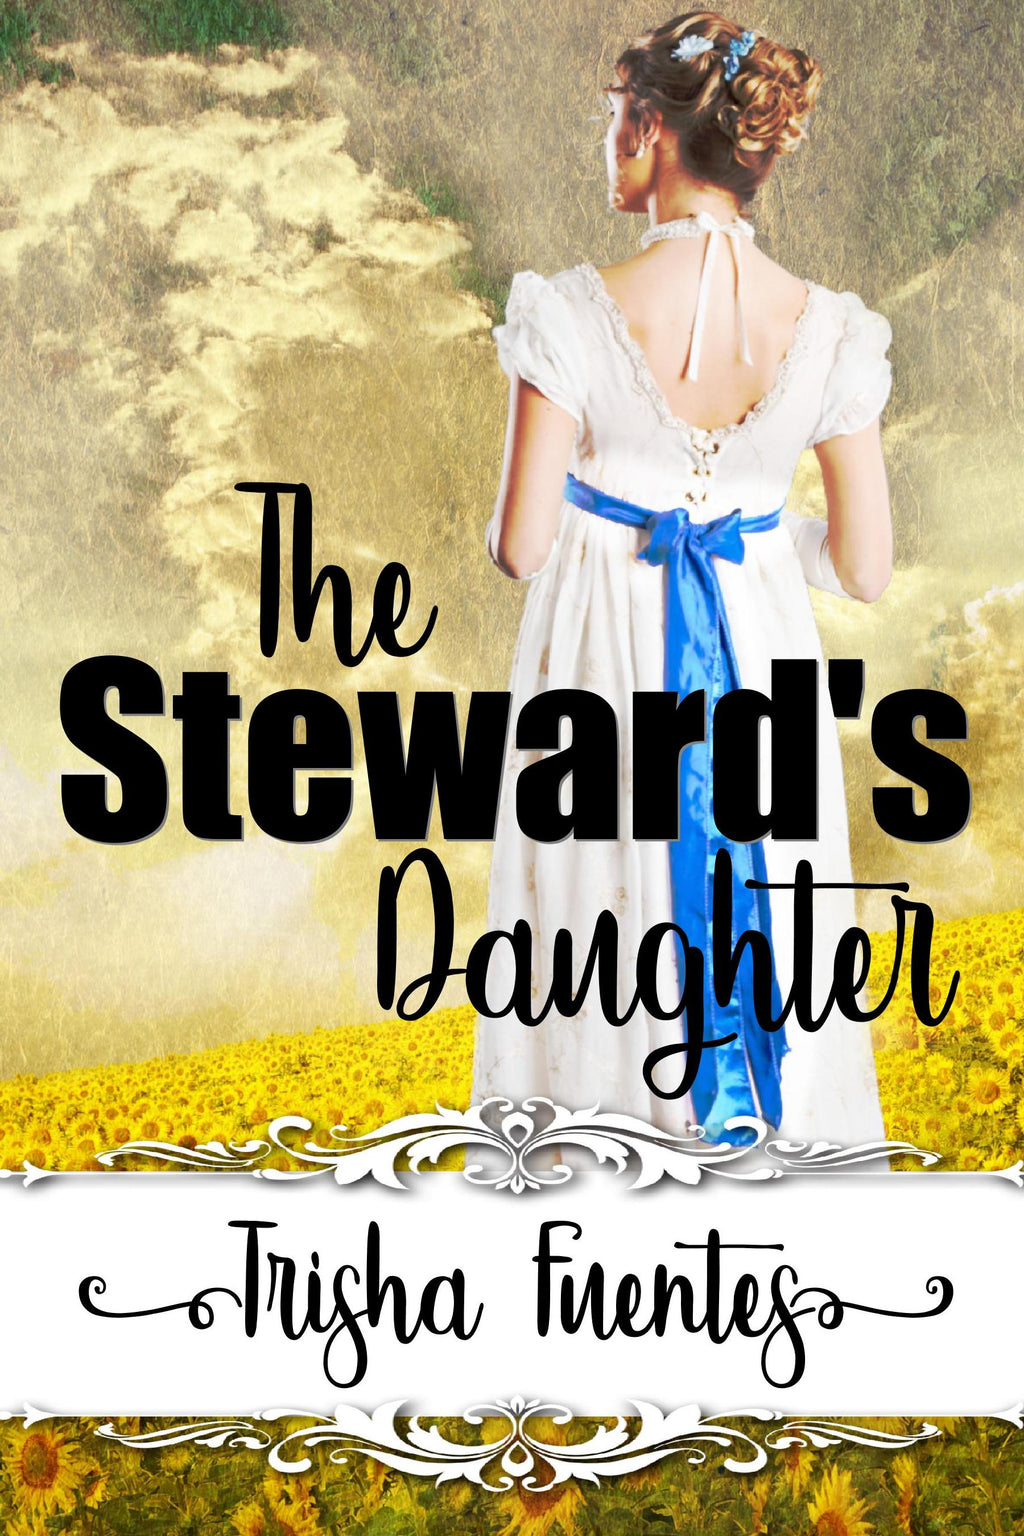 The Steward's Daughter